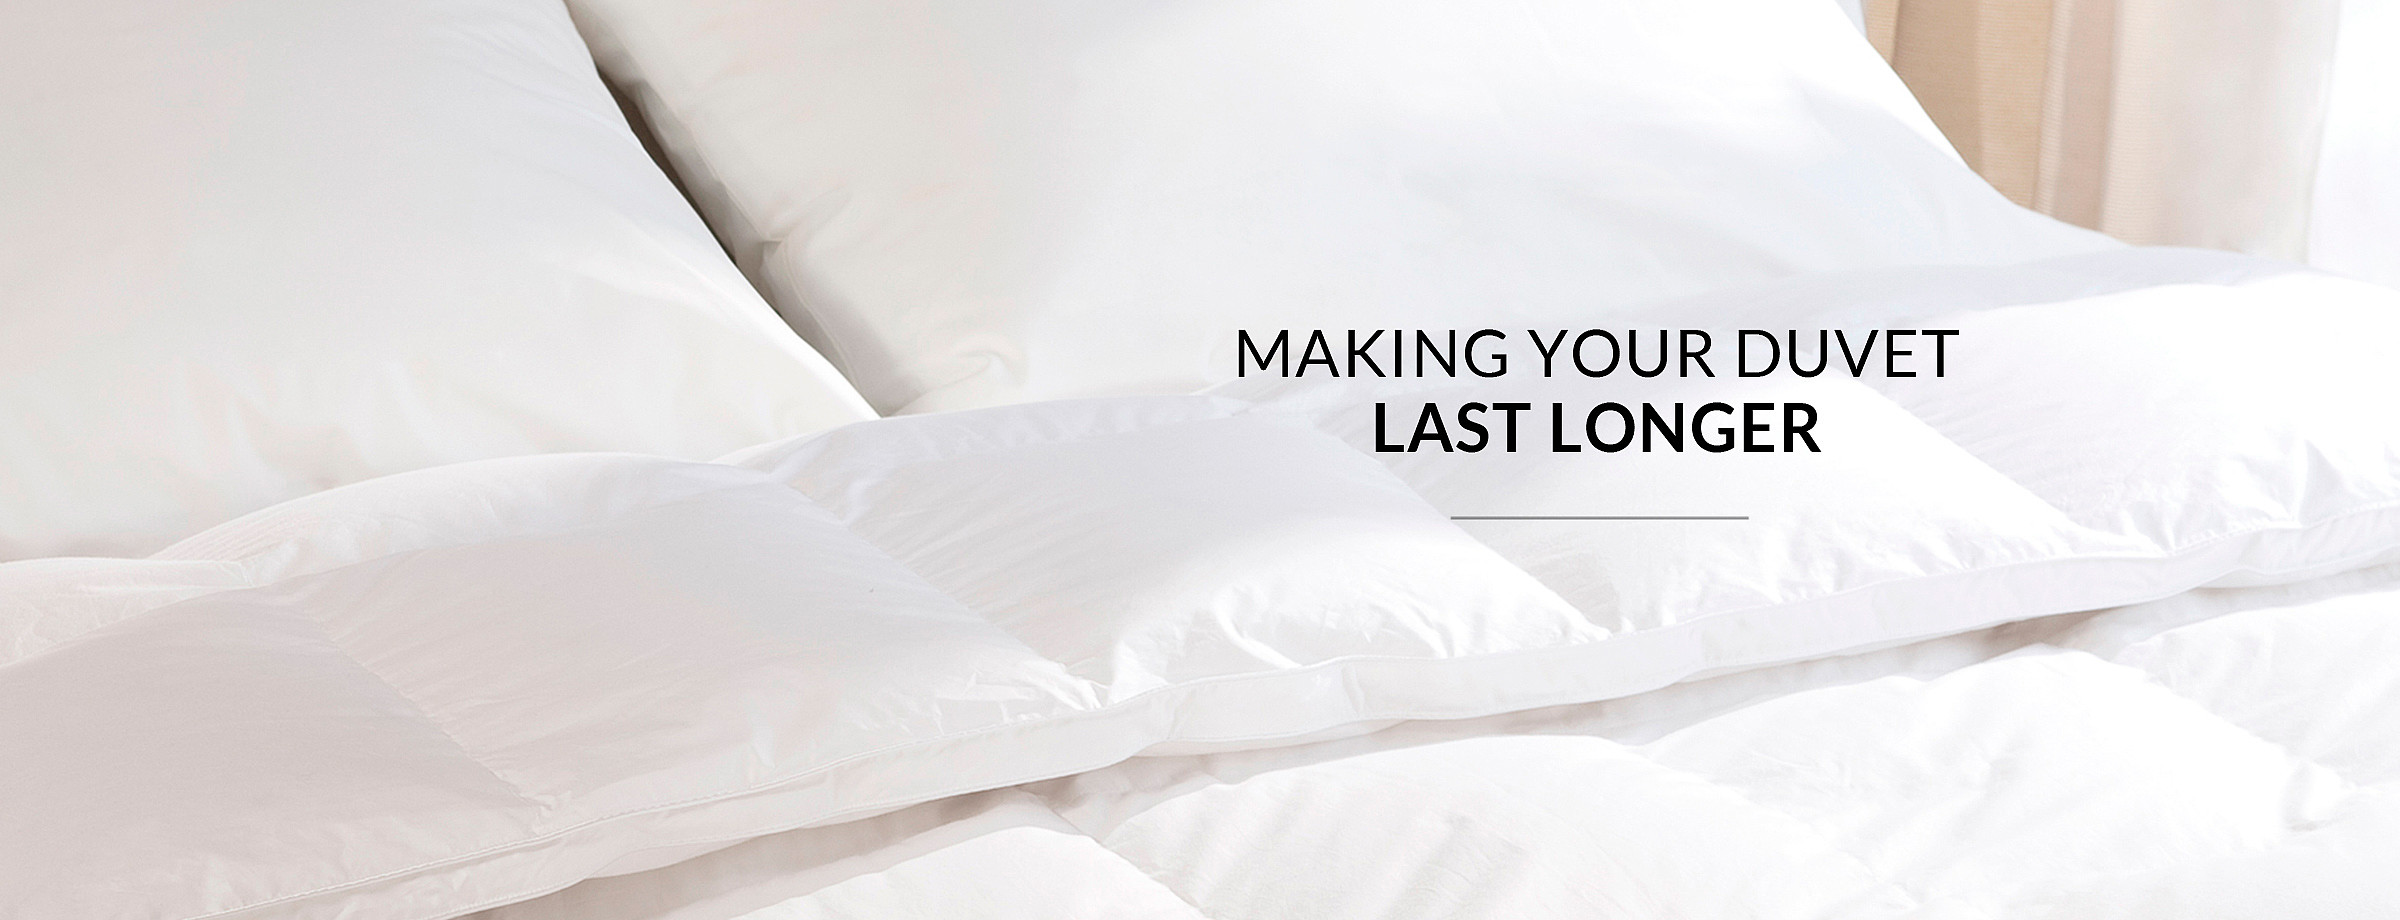 Making your Duvet Last Longer